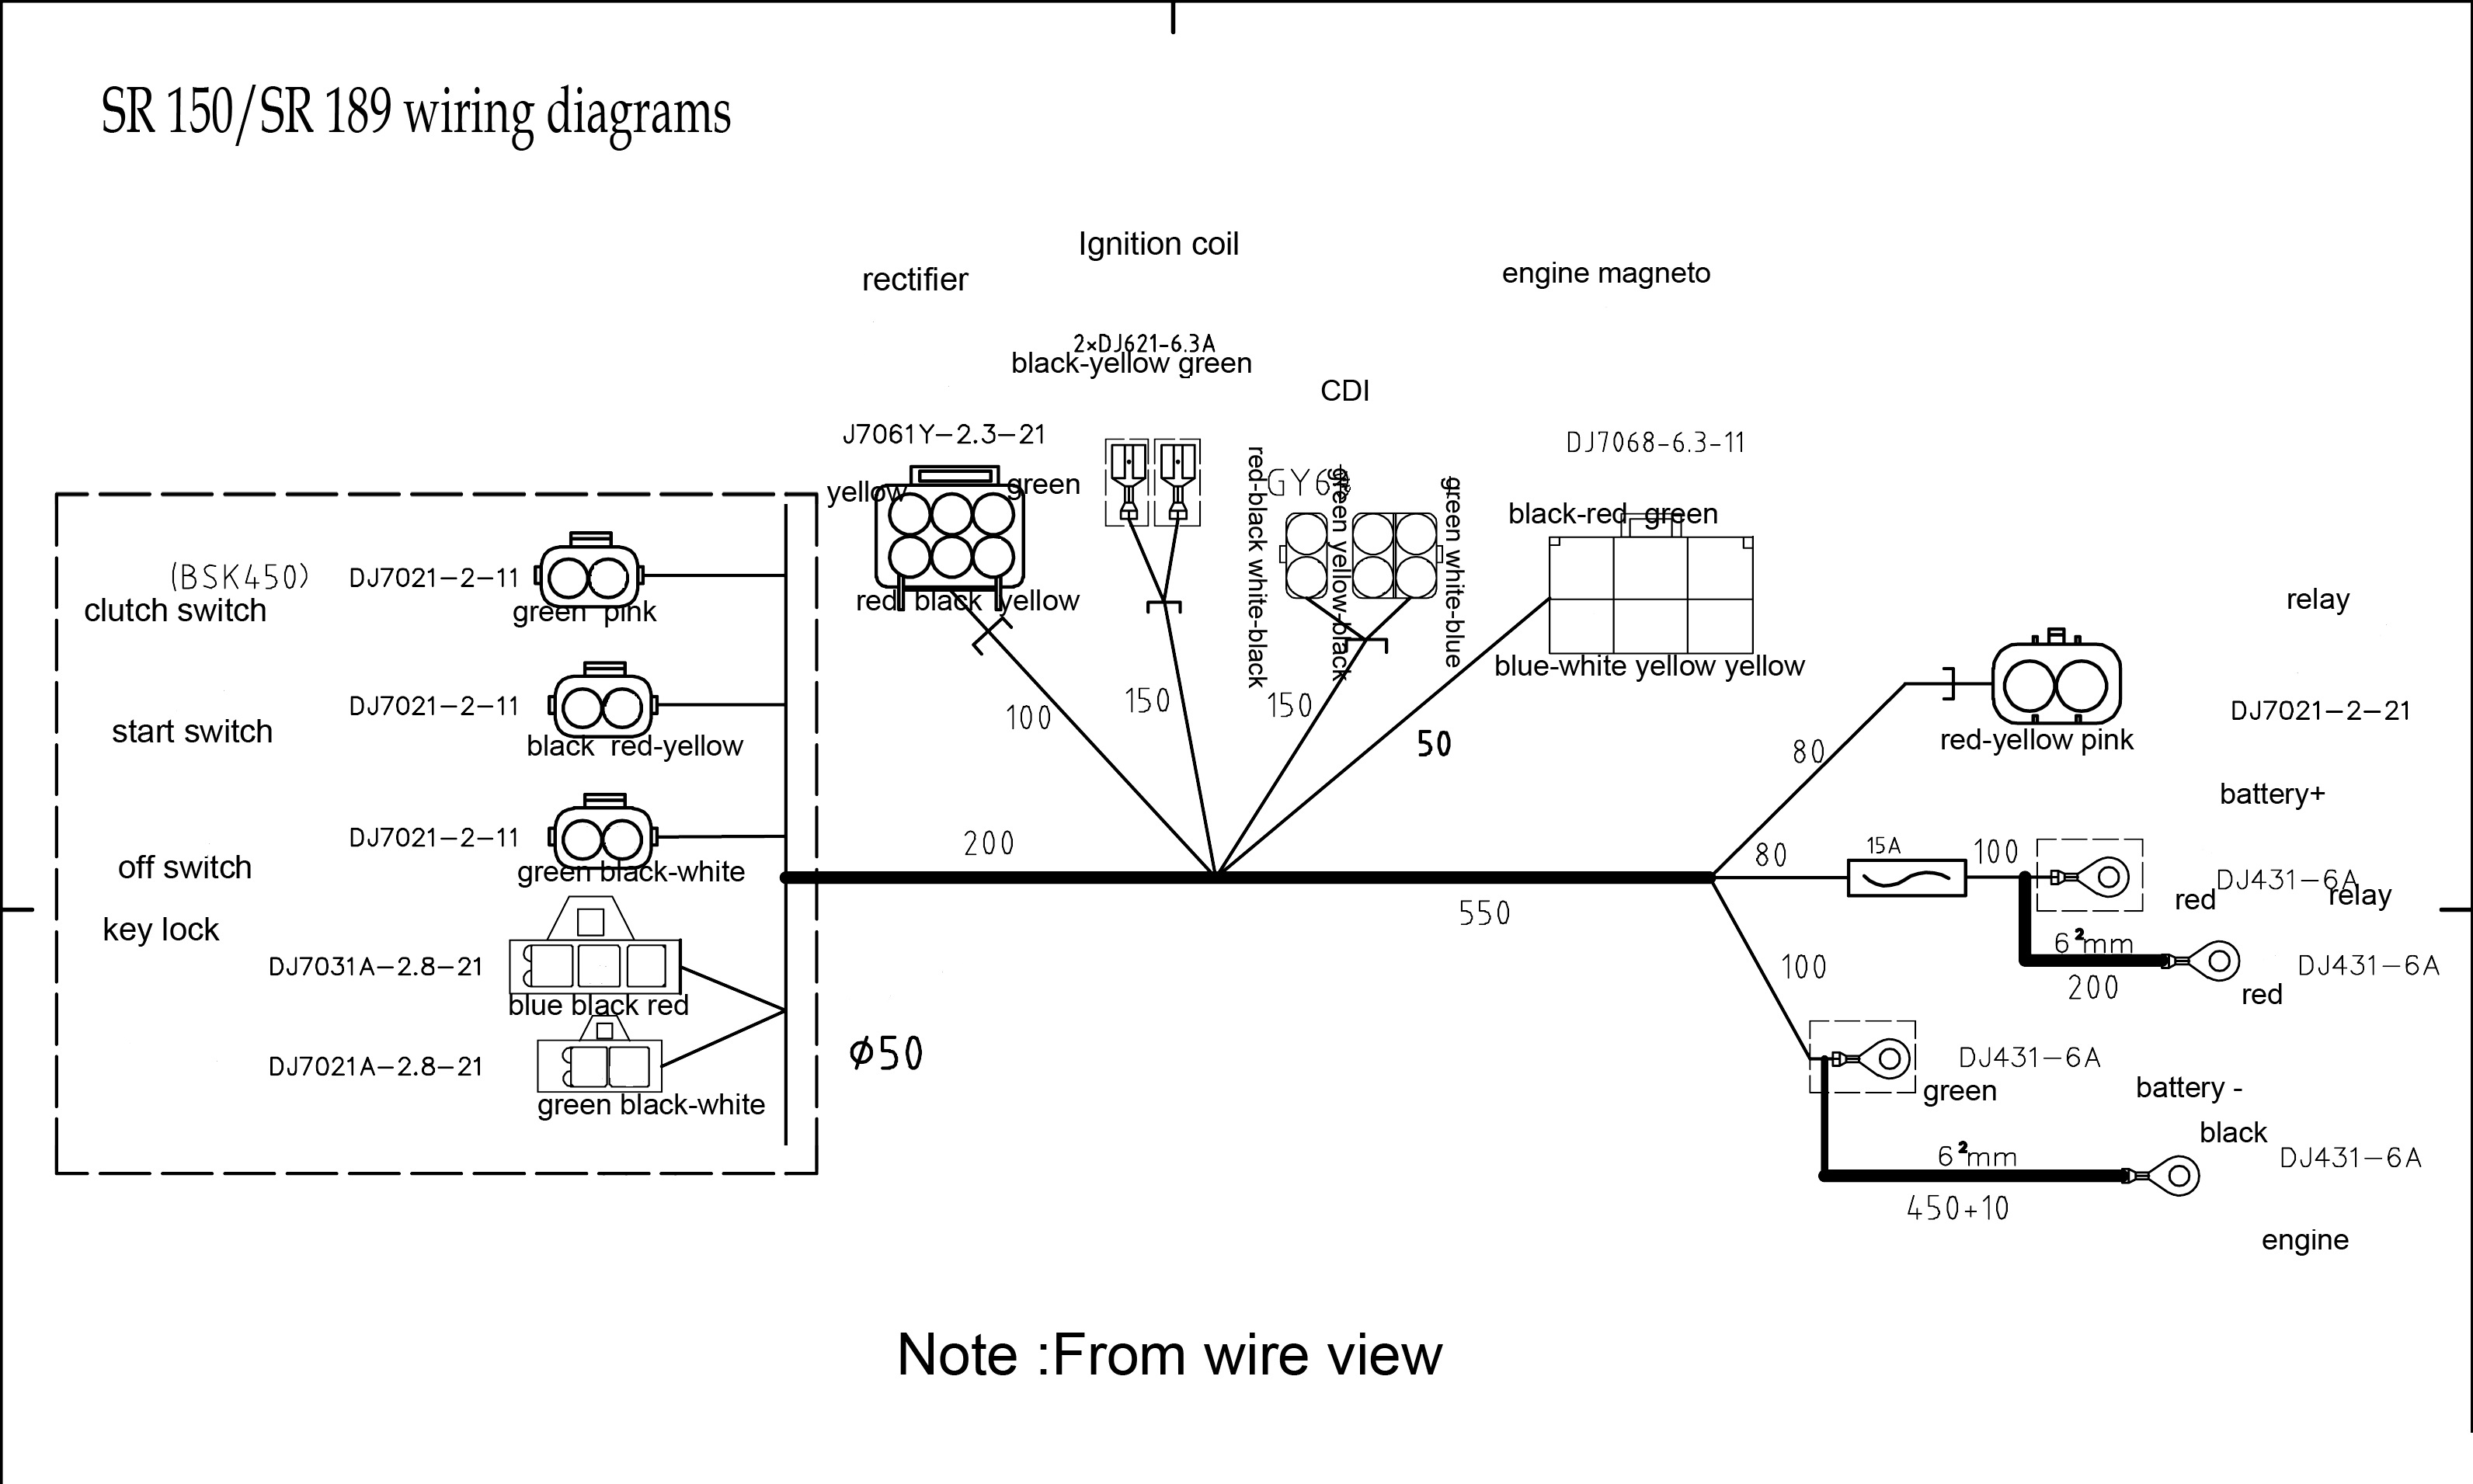 wire diagram rh ssrmotorsports com 110cc pit bike wiring diagram pit bike wiring diagram cdi